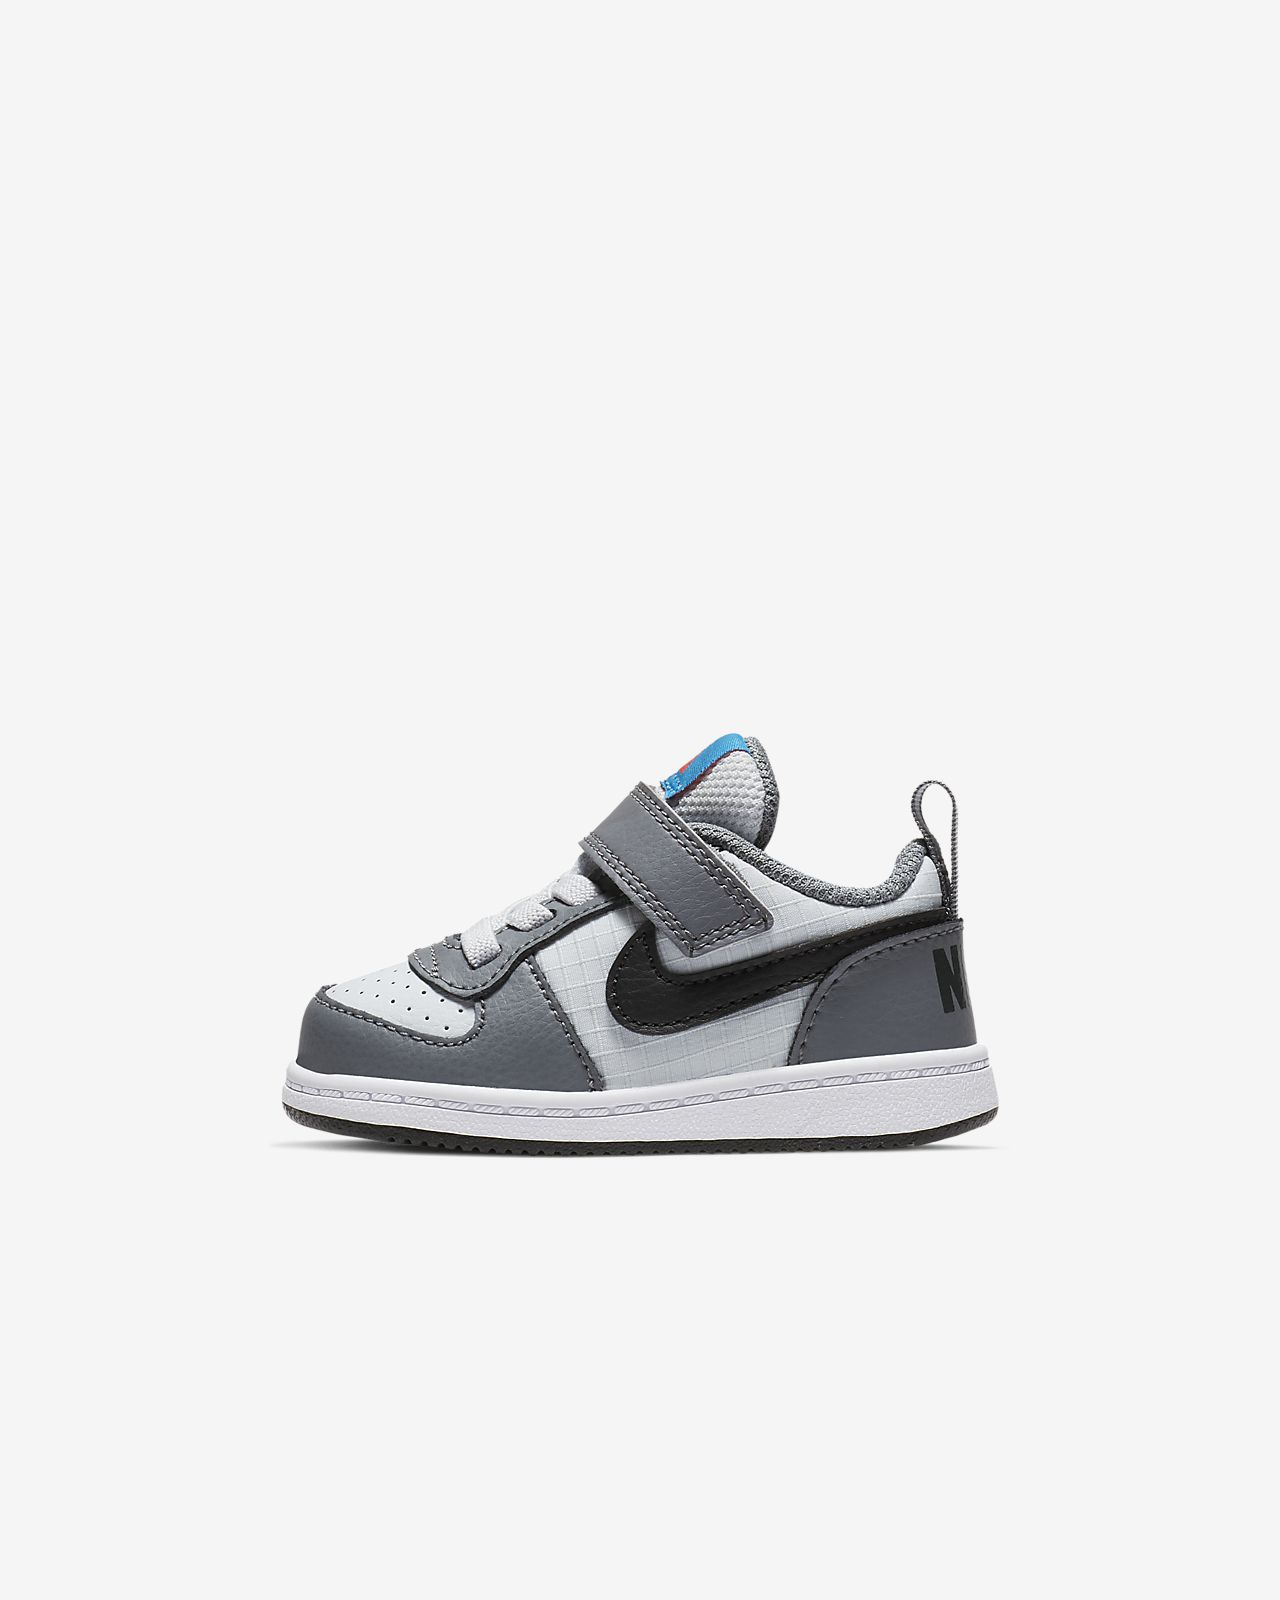 bfc6388be5d3 NikeCourt Borough Low Baby  amp  Toddler Shoe. Nike.com GB